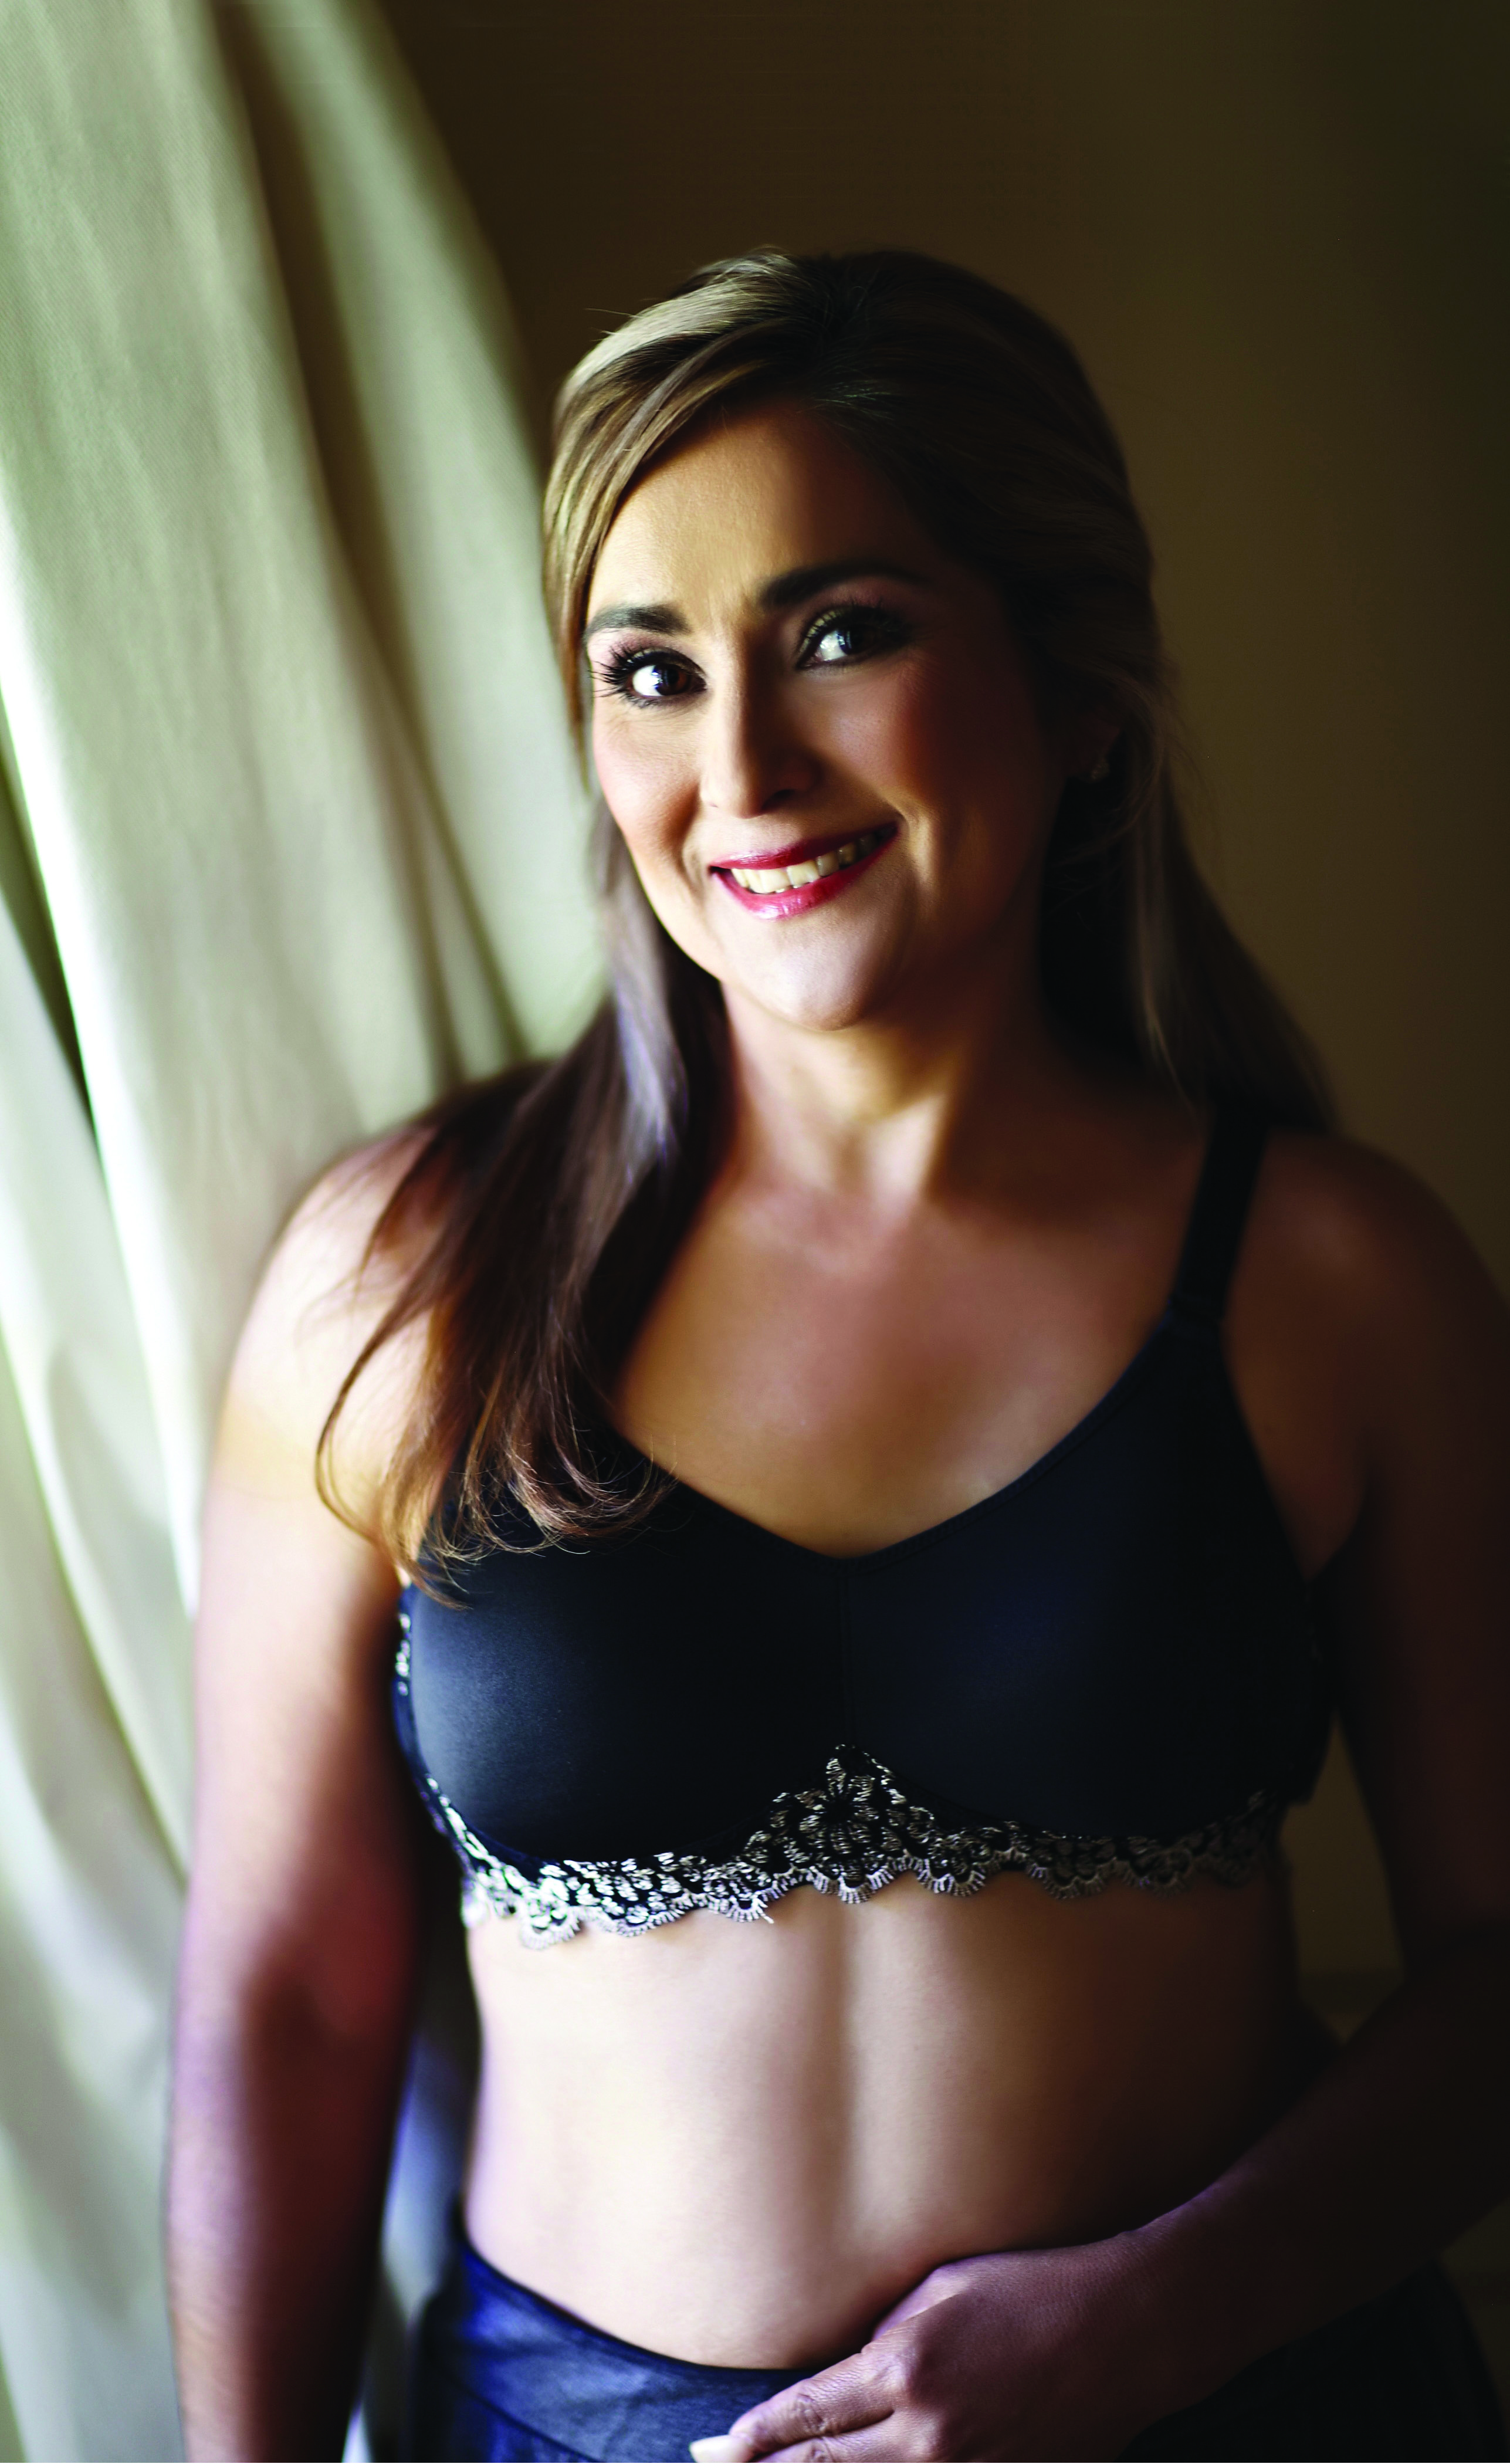 American Breast Care Adore Bra